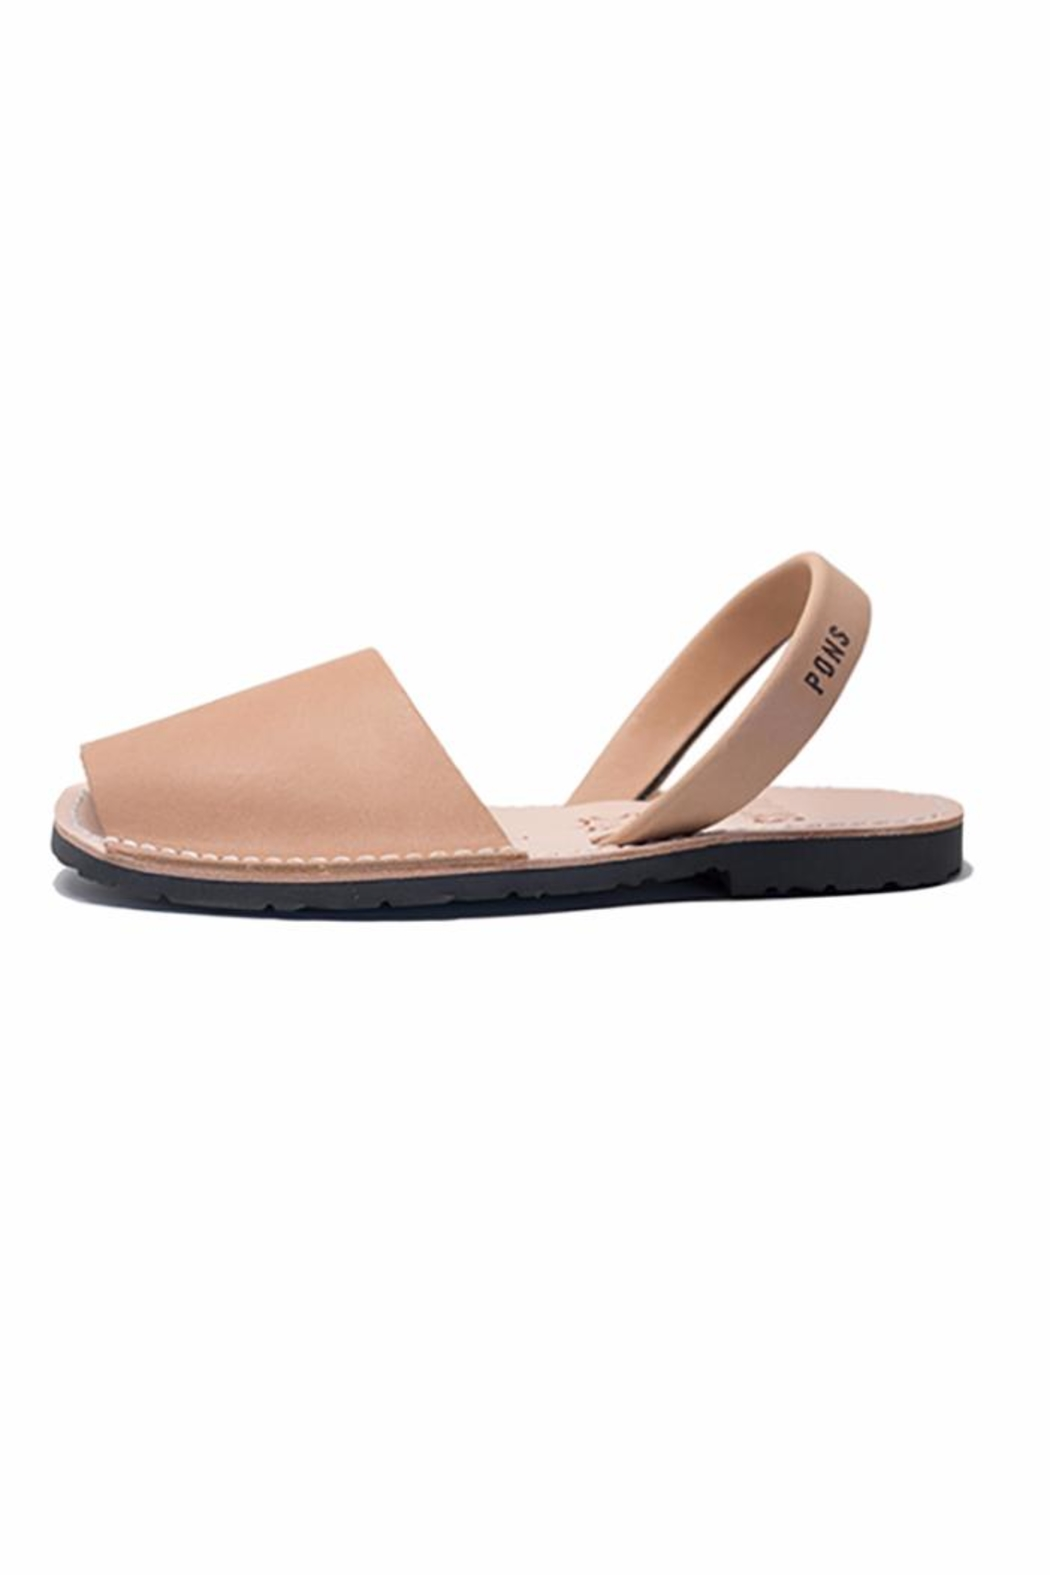 Pons Avarca Spanish Avarcas Sandals From California By